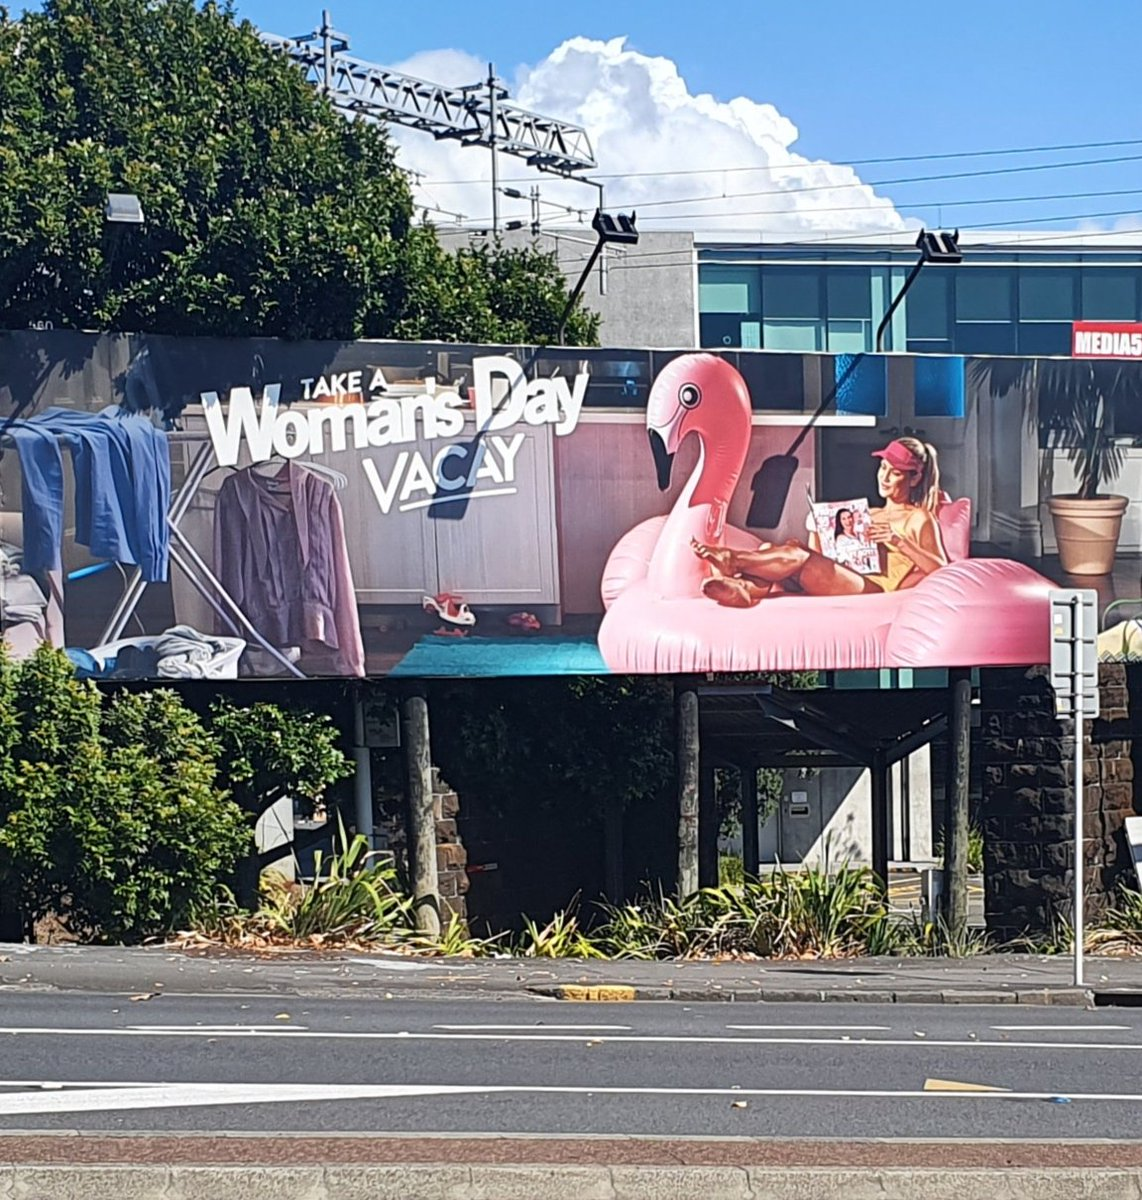 I think #bauer took this billboard a bit too literally. Looks like it may be a permanent vacay. #parnellpic.twitter.com/JP1n9SMnZw